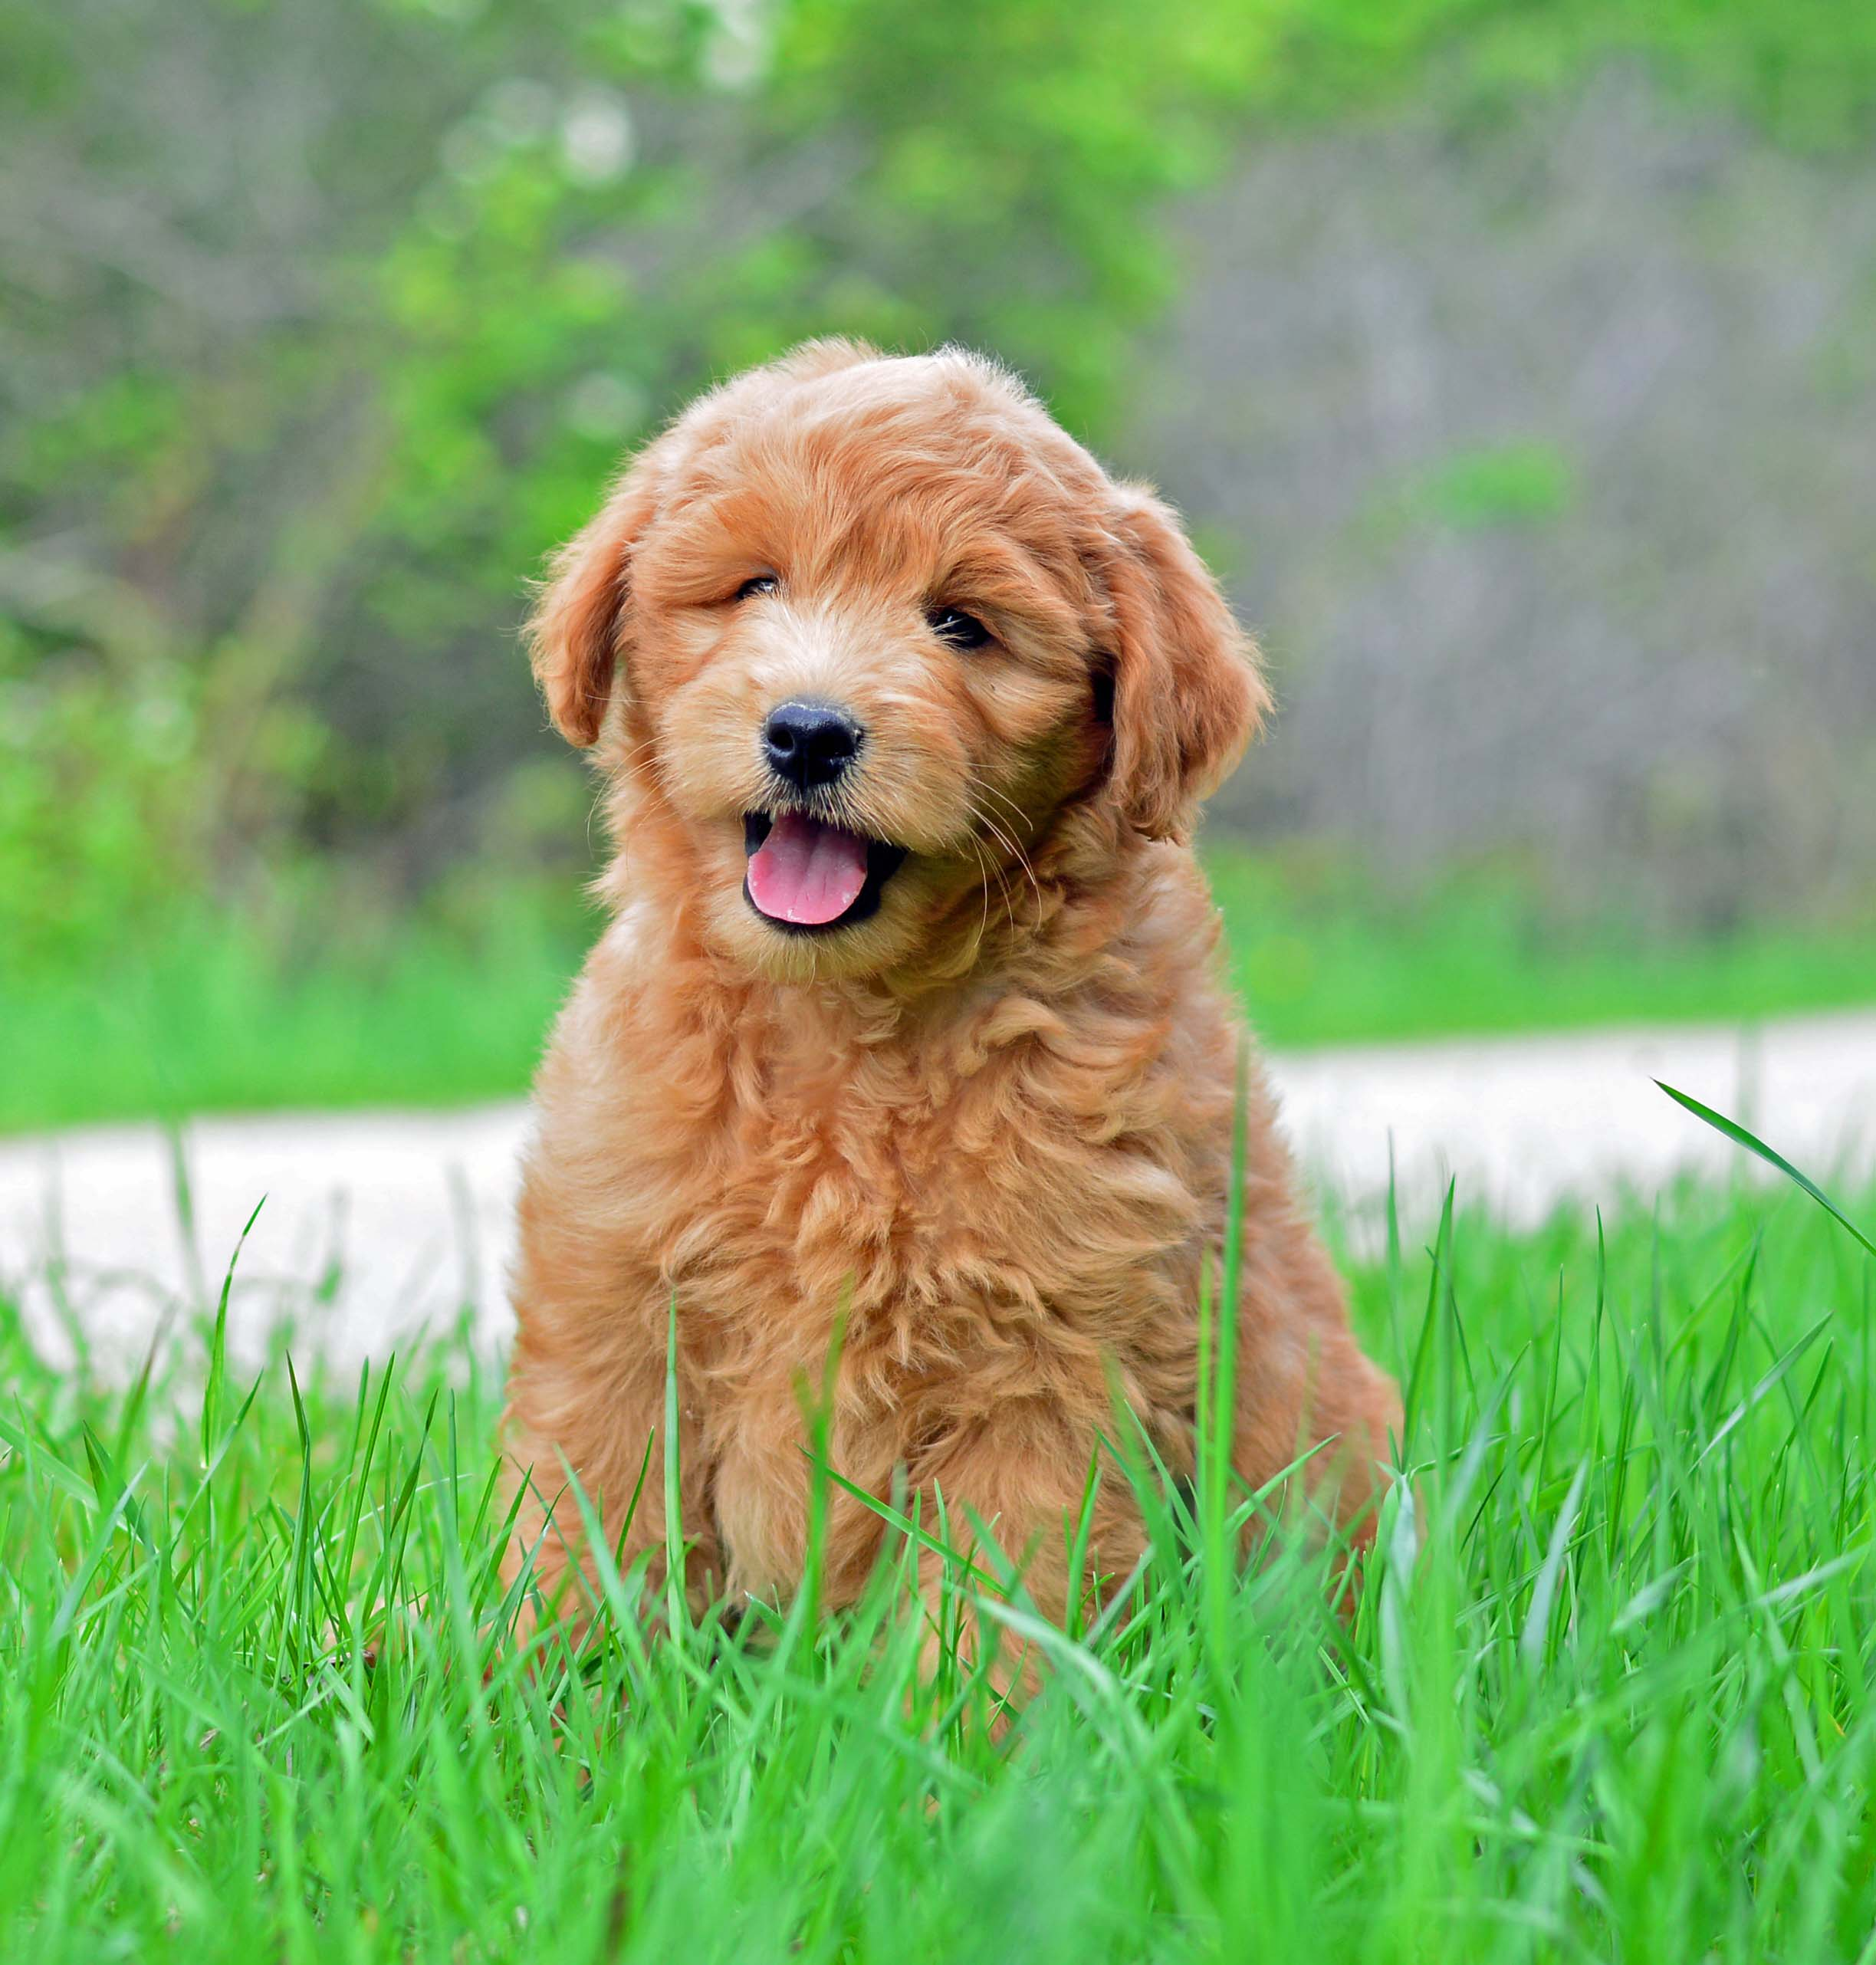 One of the beautiful Goldendoodle puppies bred here at Doodle Creek!